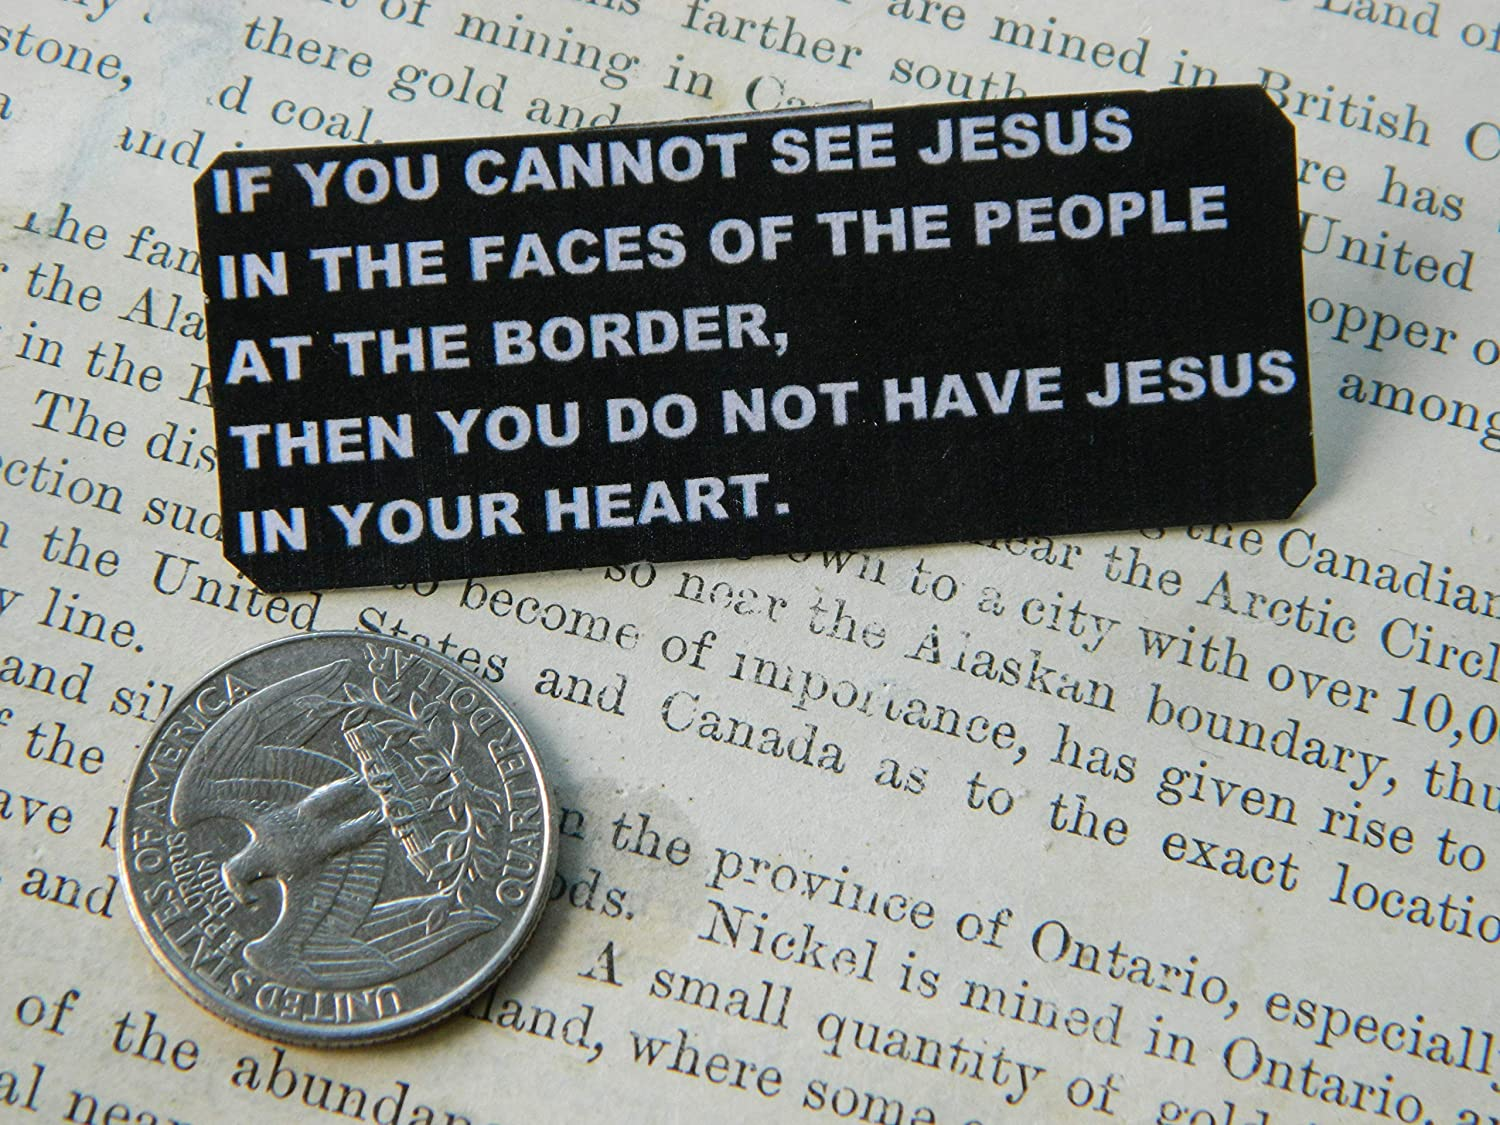 Immigration Lapel Pin If You Cannot See Jesus in the Faces at the Border.